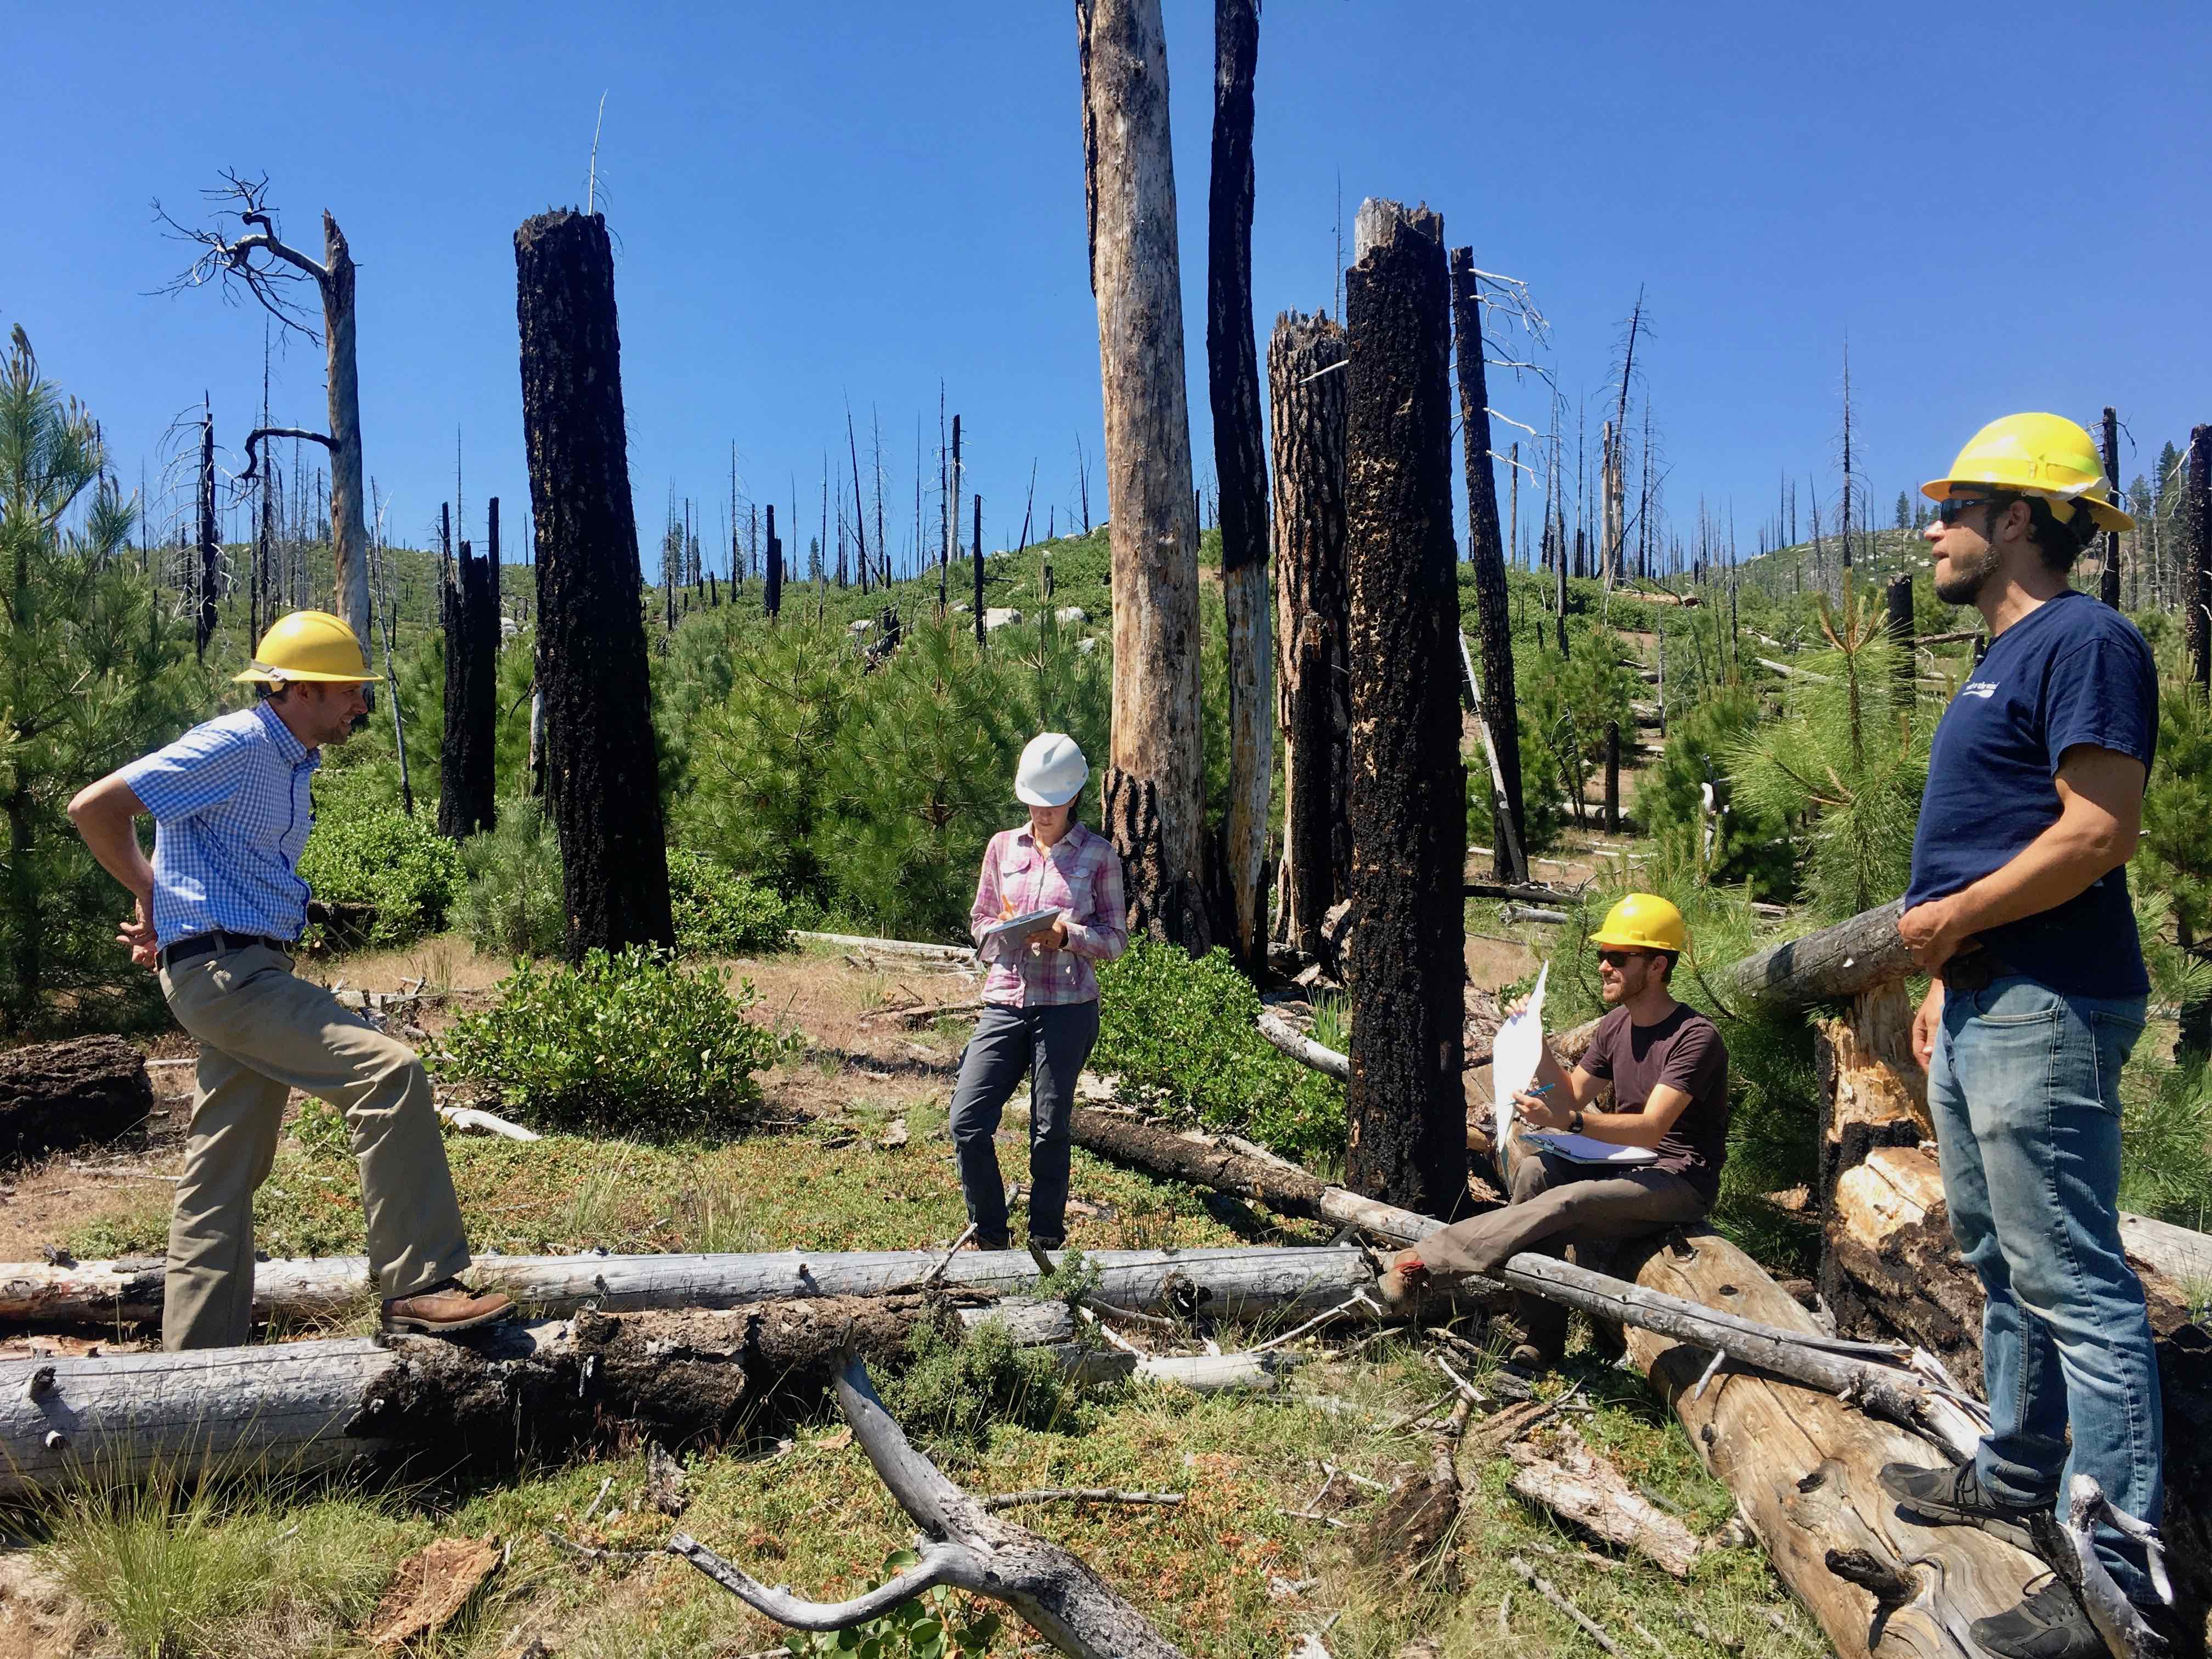 Discussing postfire tree regen with forest service